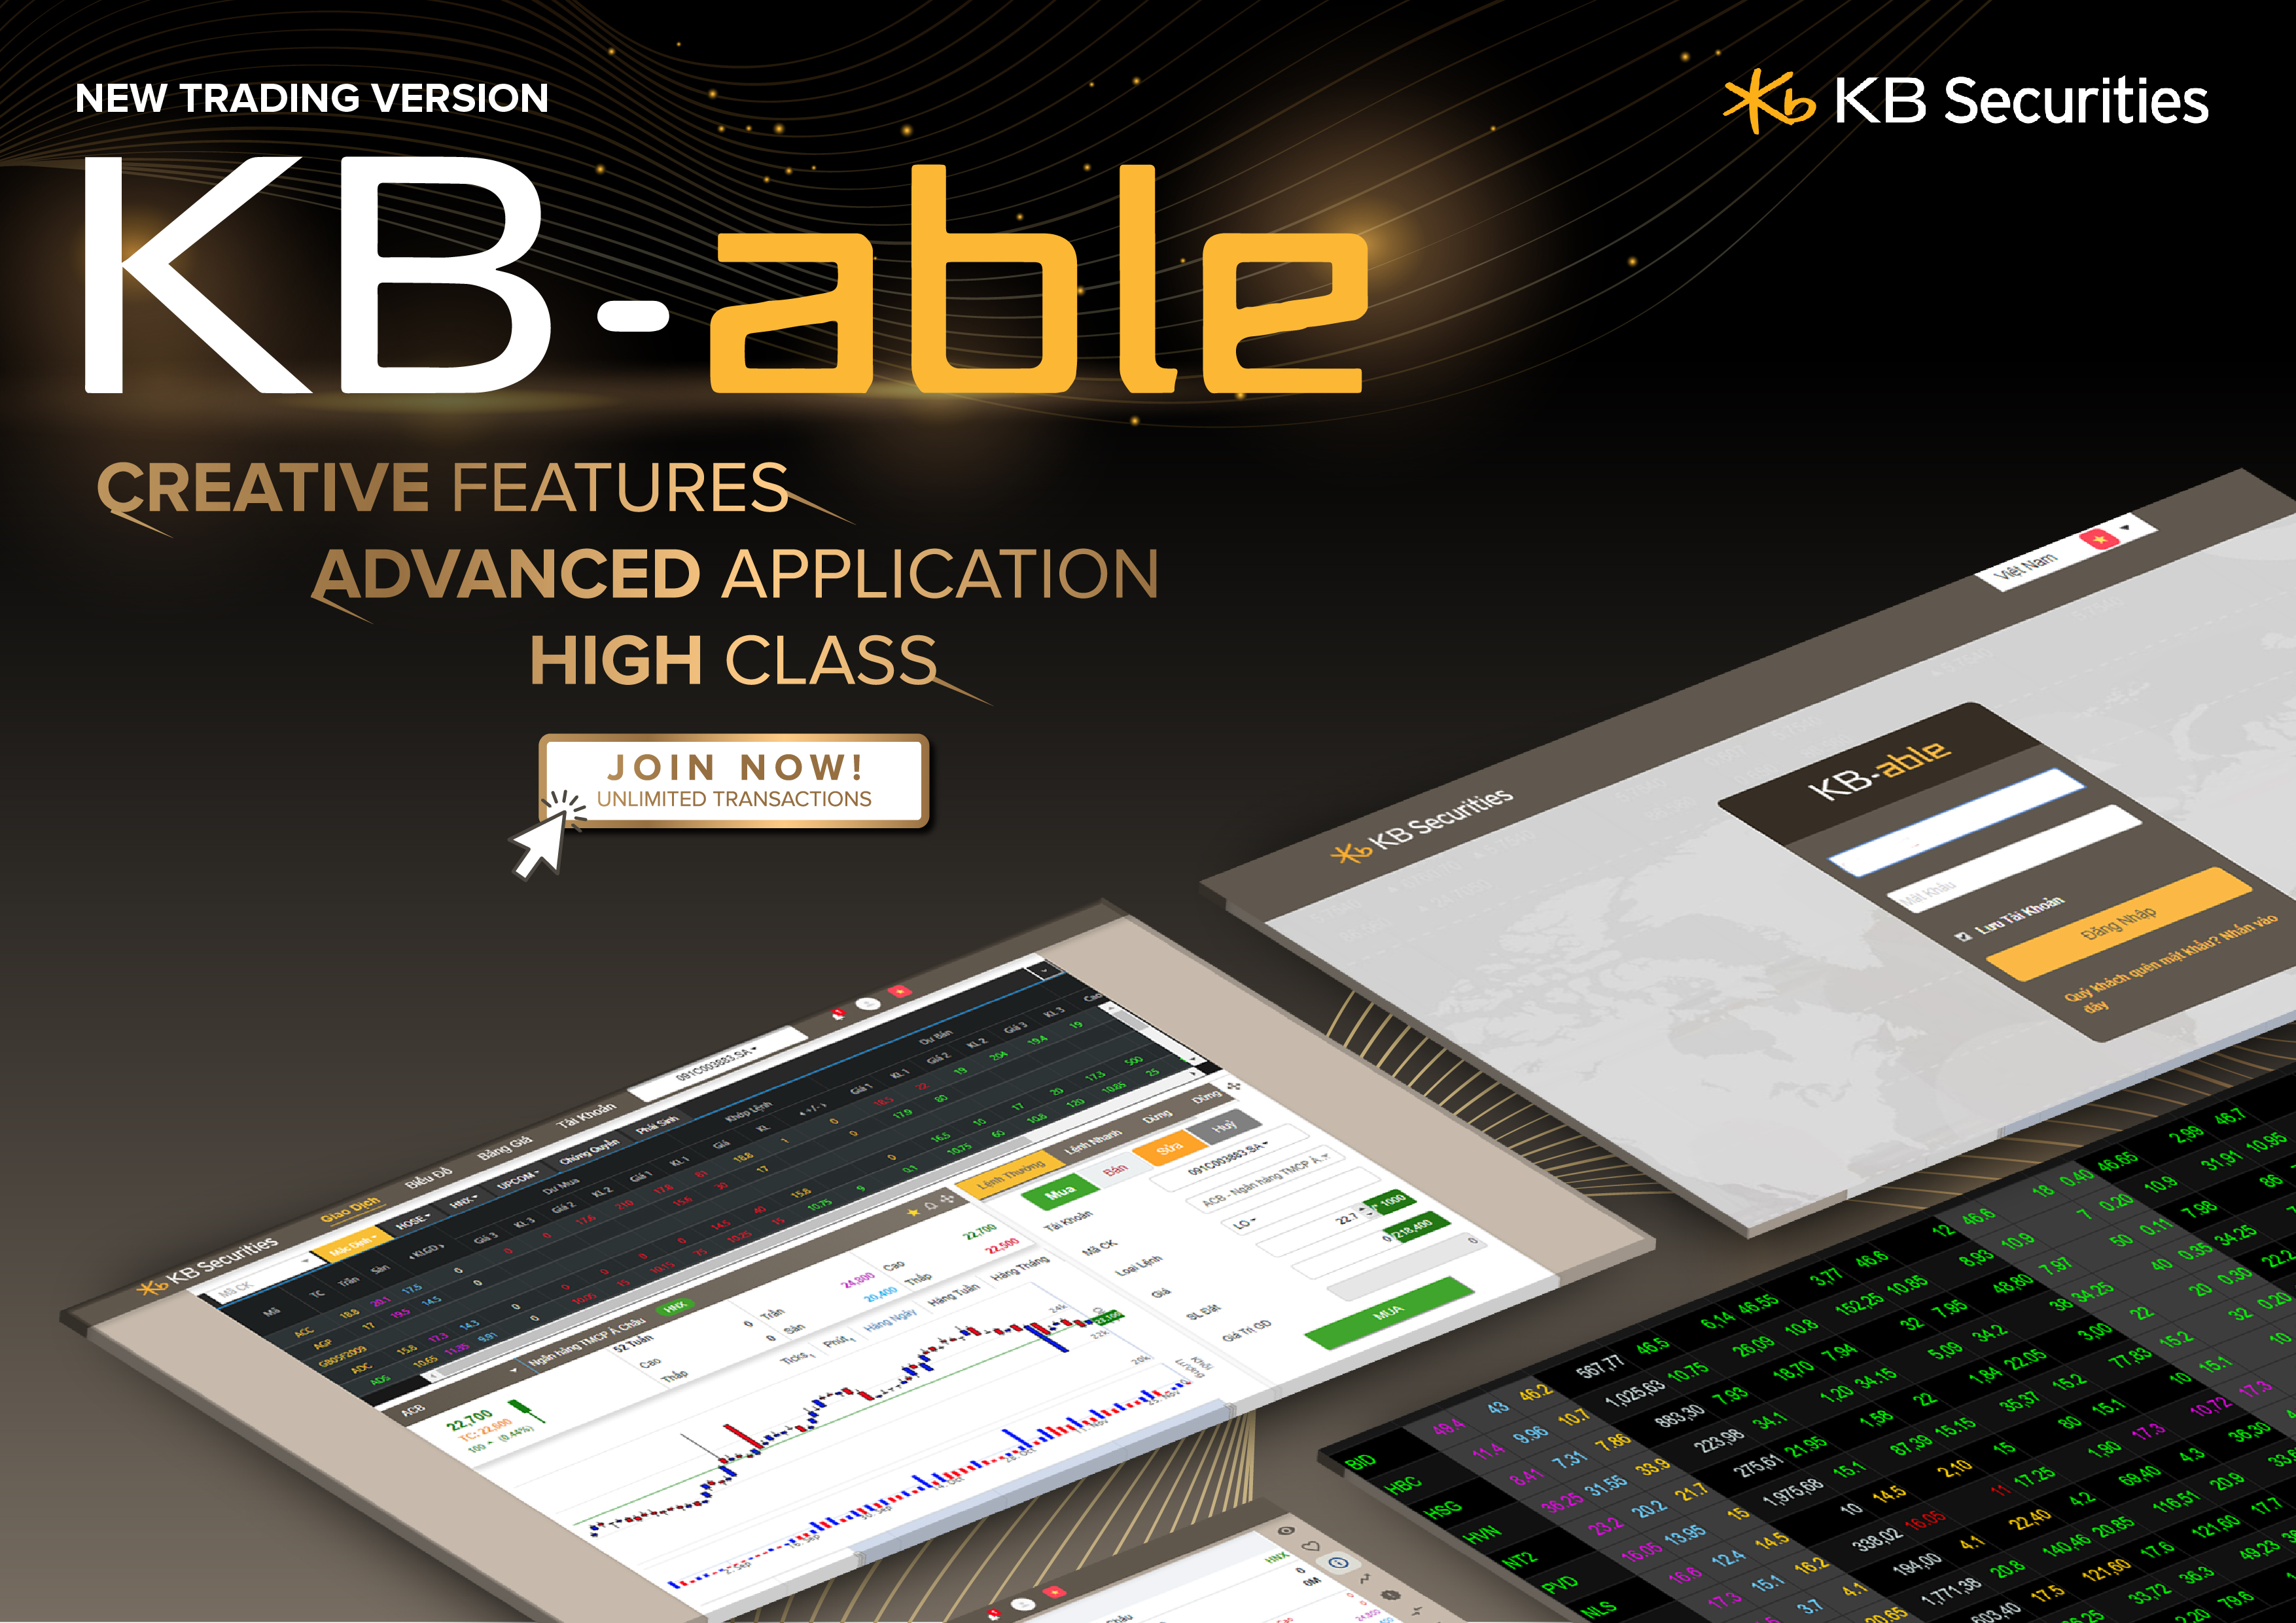 """KBSV launching KB-able - """"unlimited trading system"""